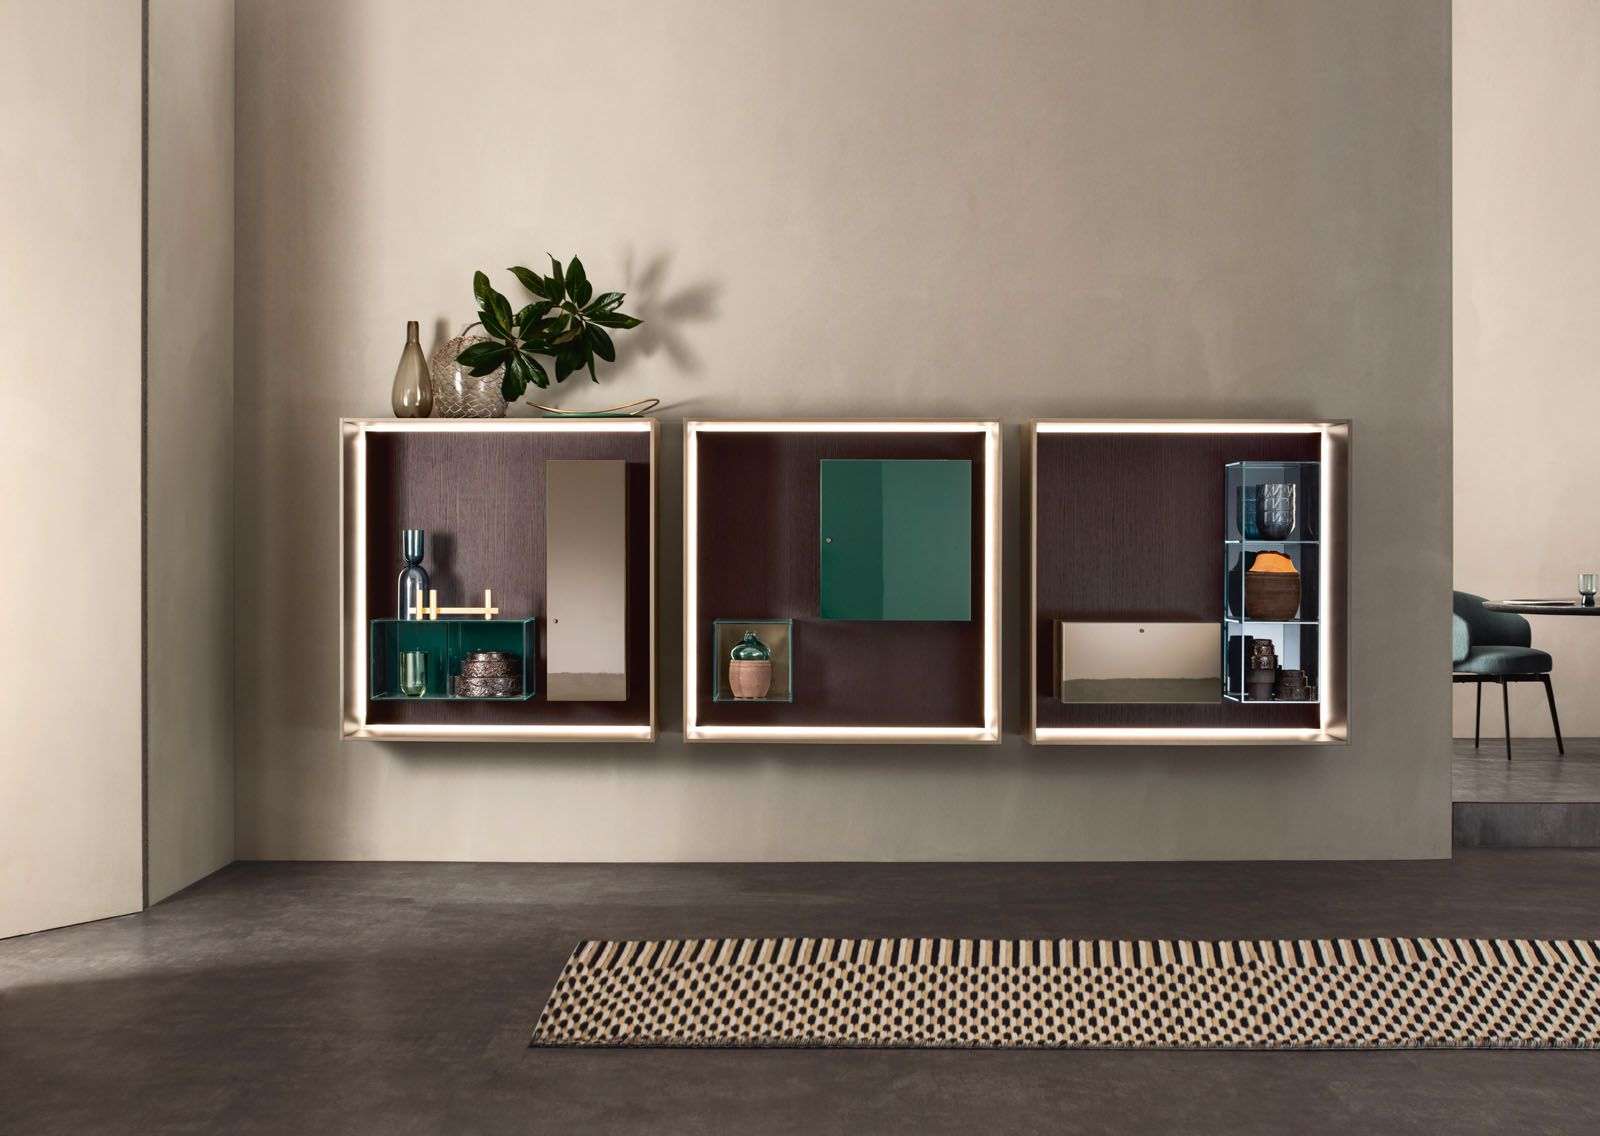 Lema LT40 storage system by David Lopez Quincoces, from W. Atelier